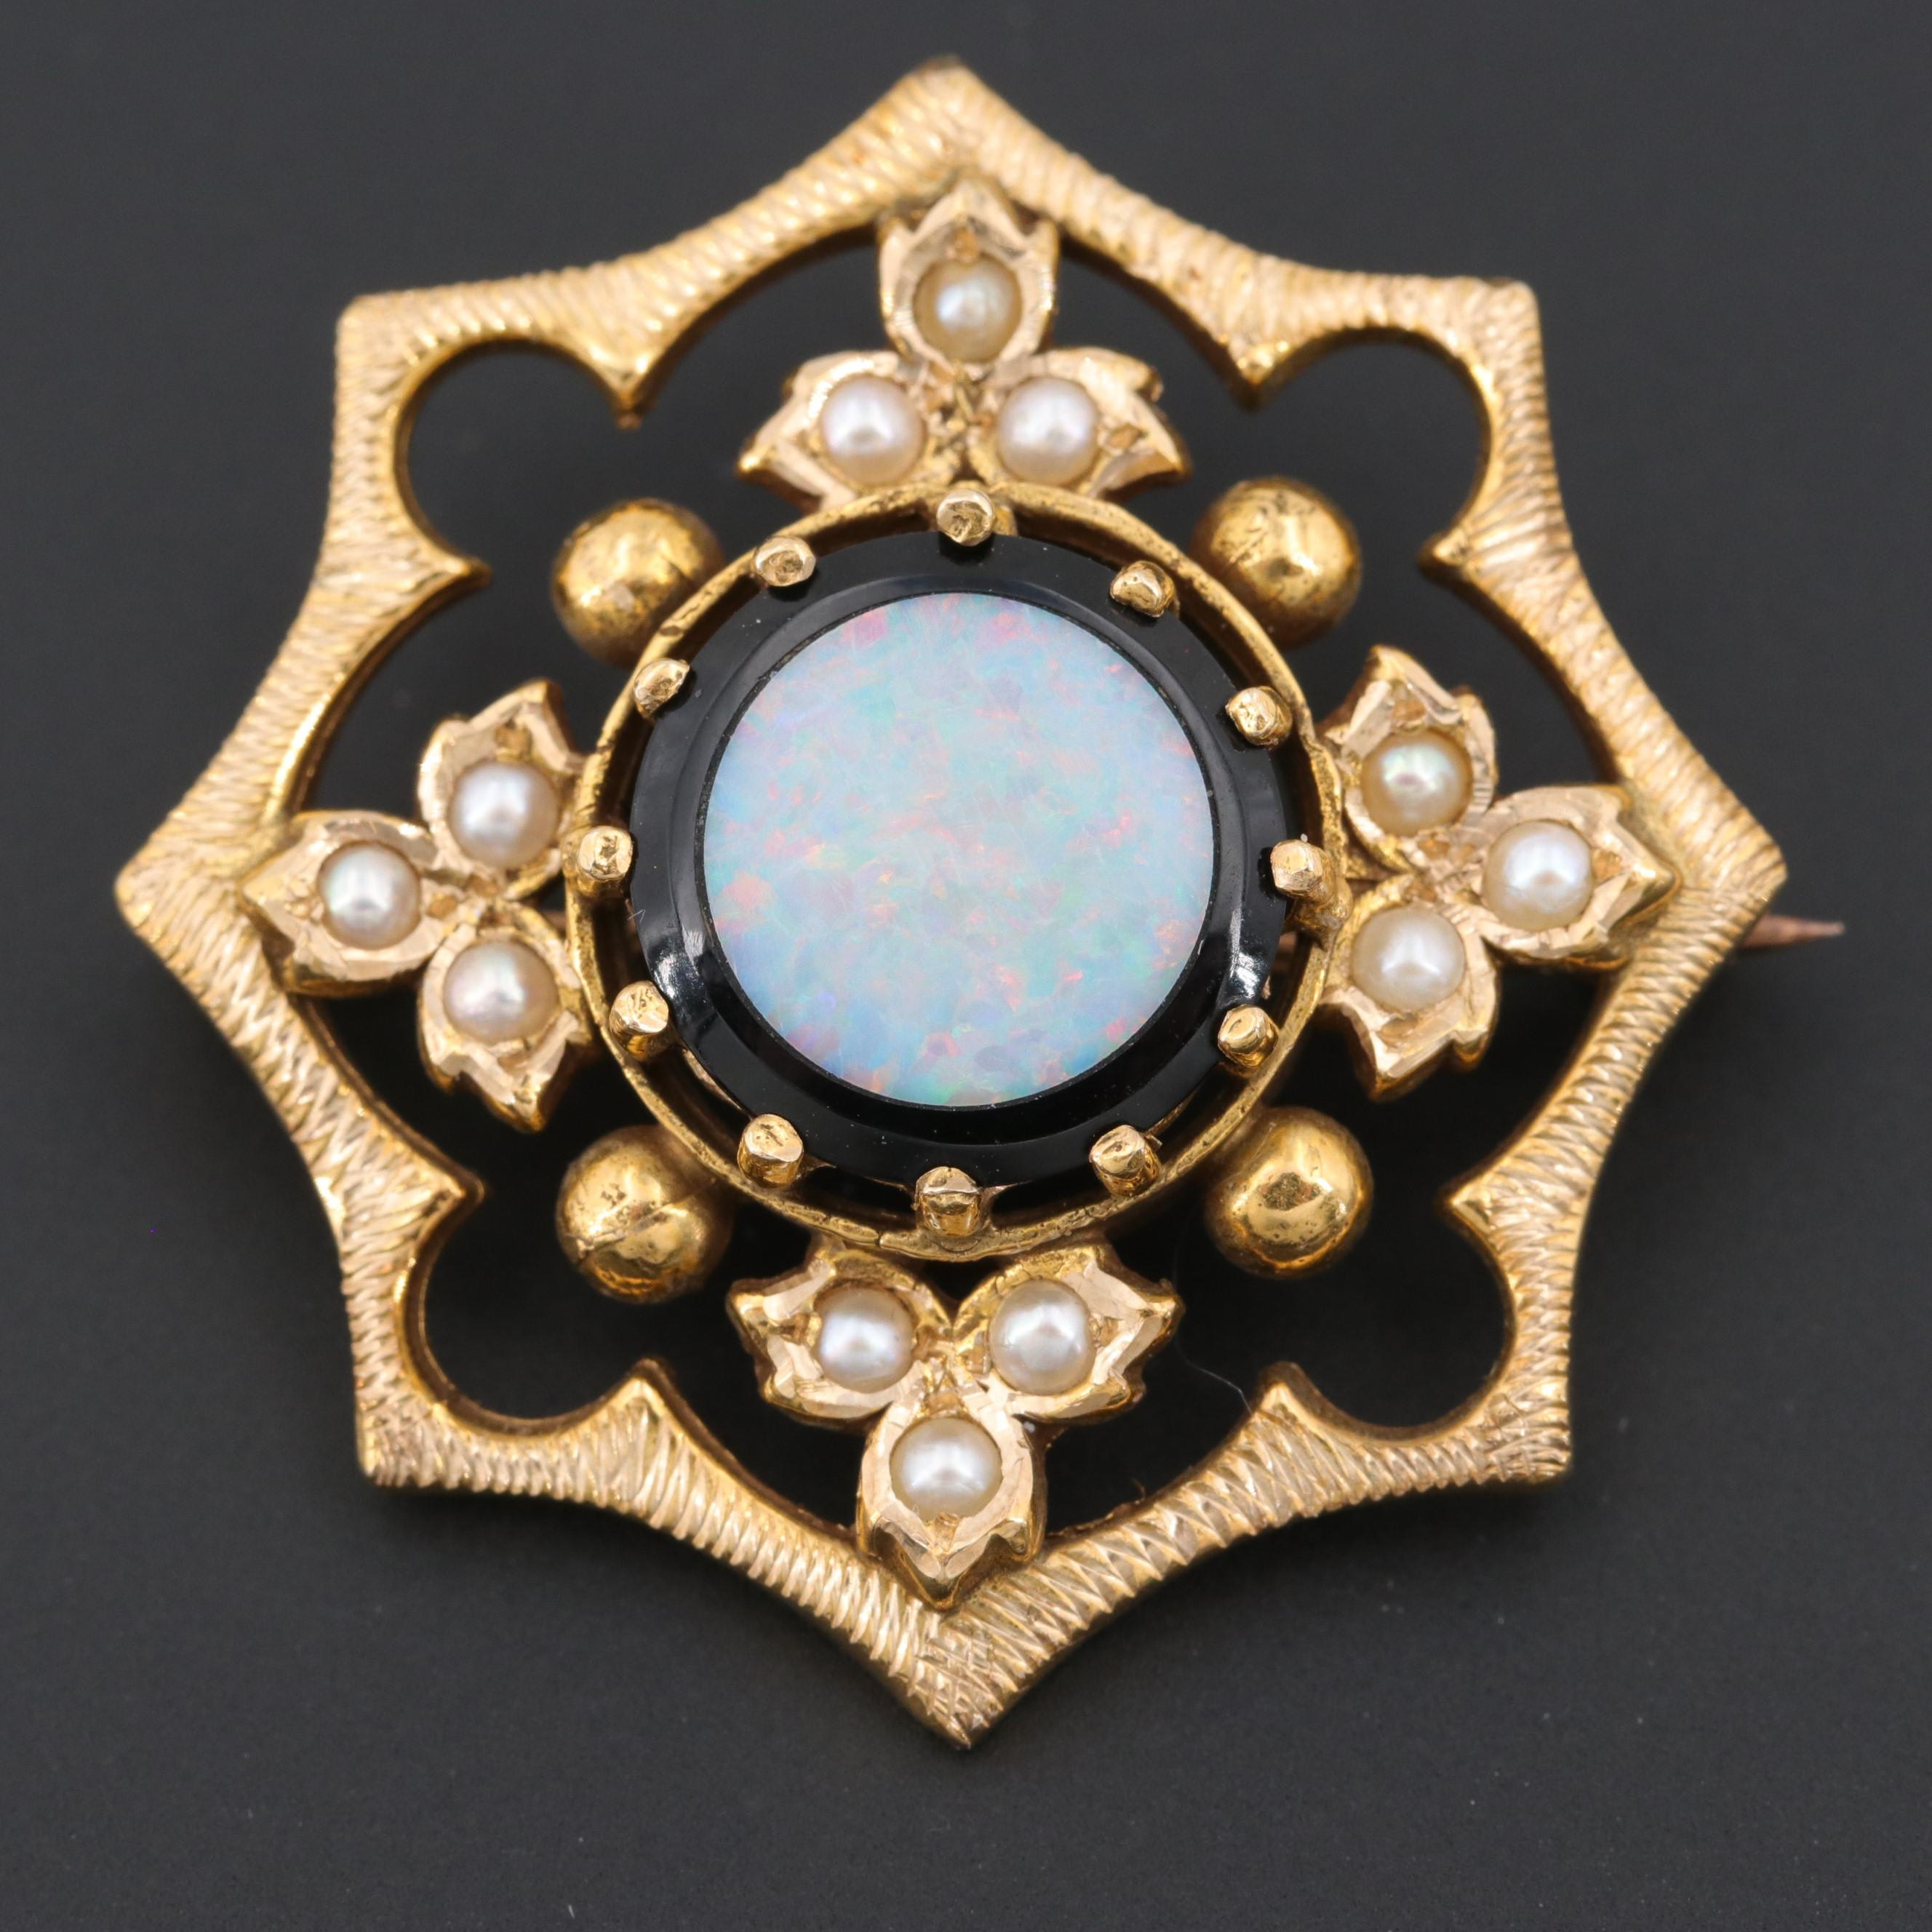 Vintage 14K Yellow Gold Cultured Pearl and Black Onyx with Opal Inlay Brooch